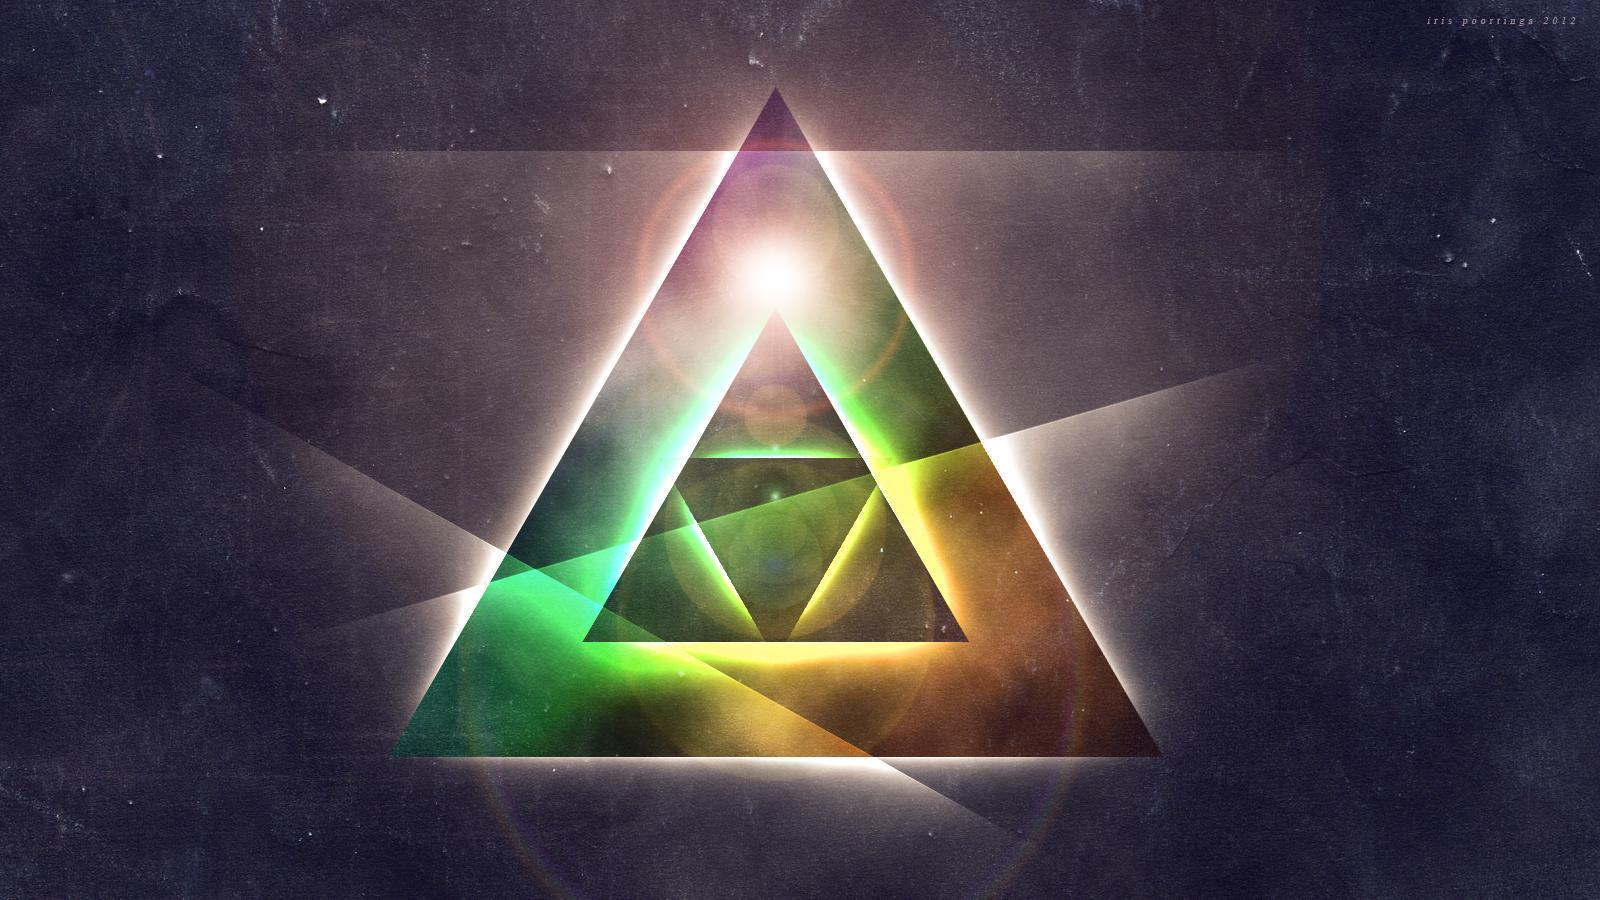 illuminati triangle wallpaper hd - photo #11